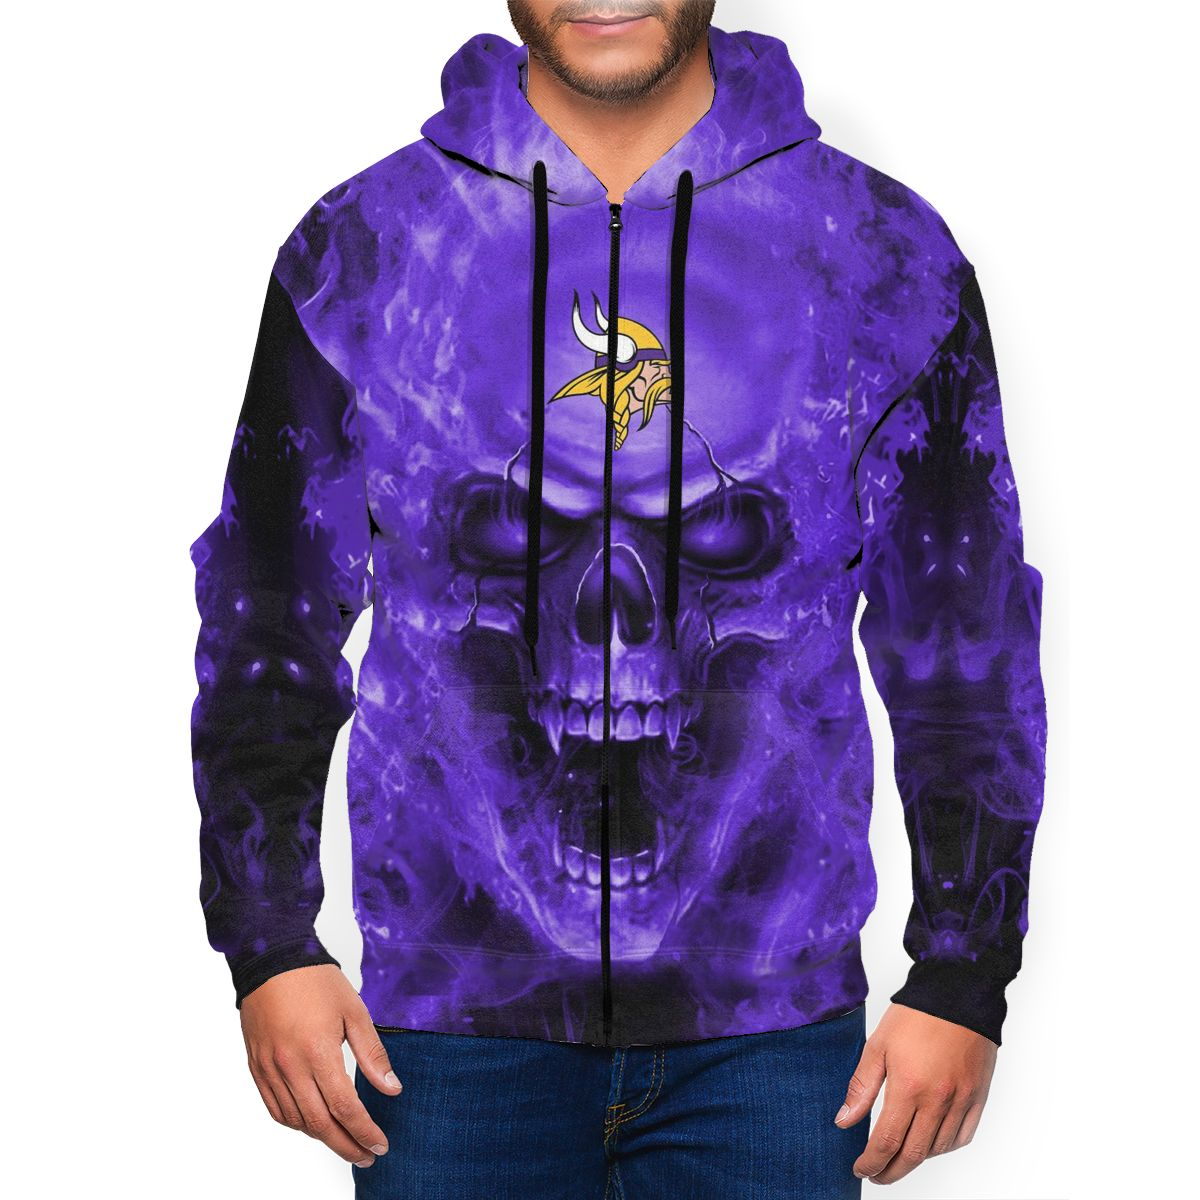 3D Skull Vikings Men's Zip Hooded Sweatshirt